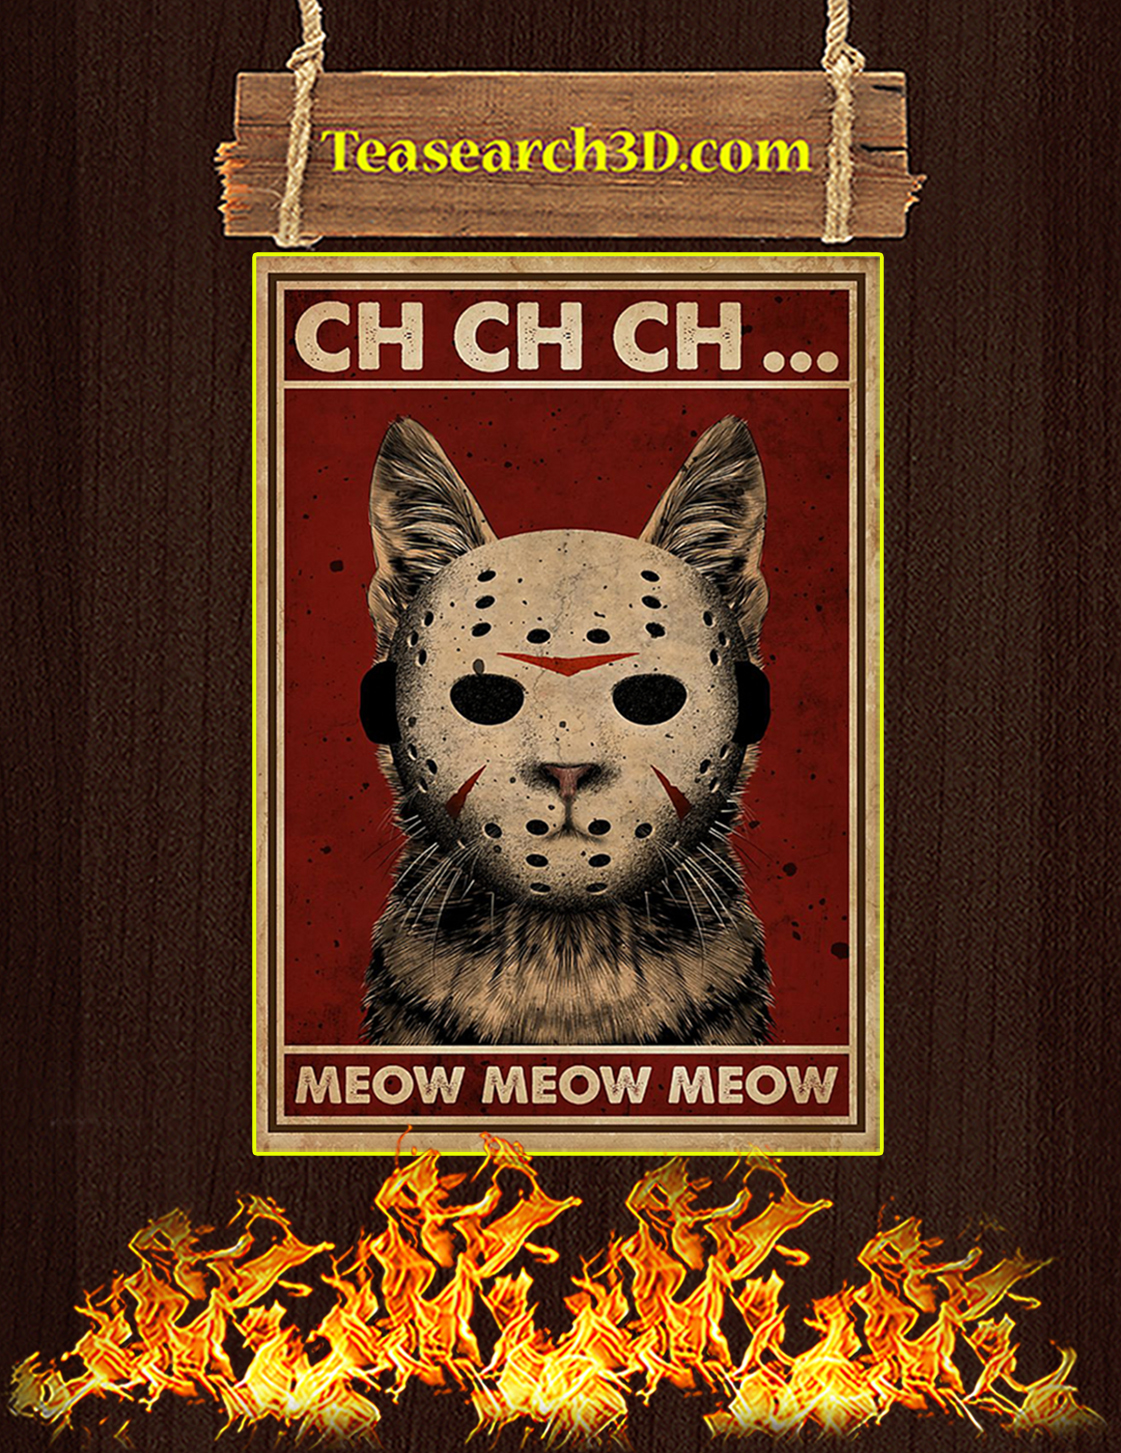 Cat ch ch ch meow meow meow poster A3